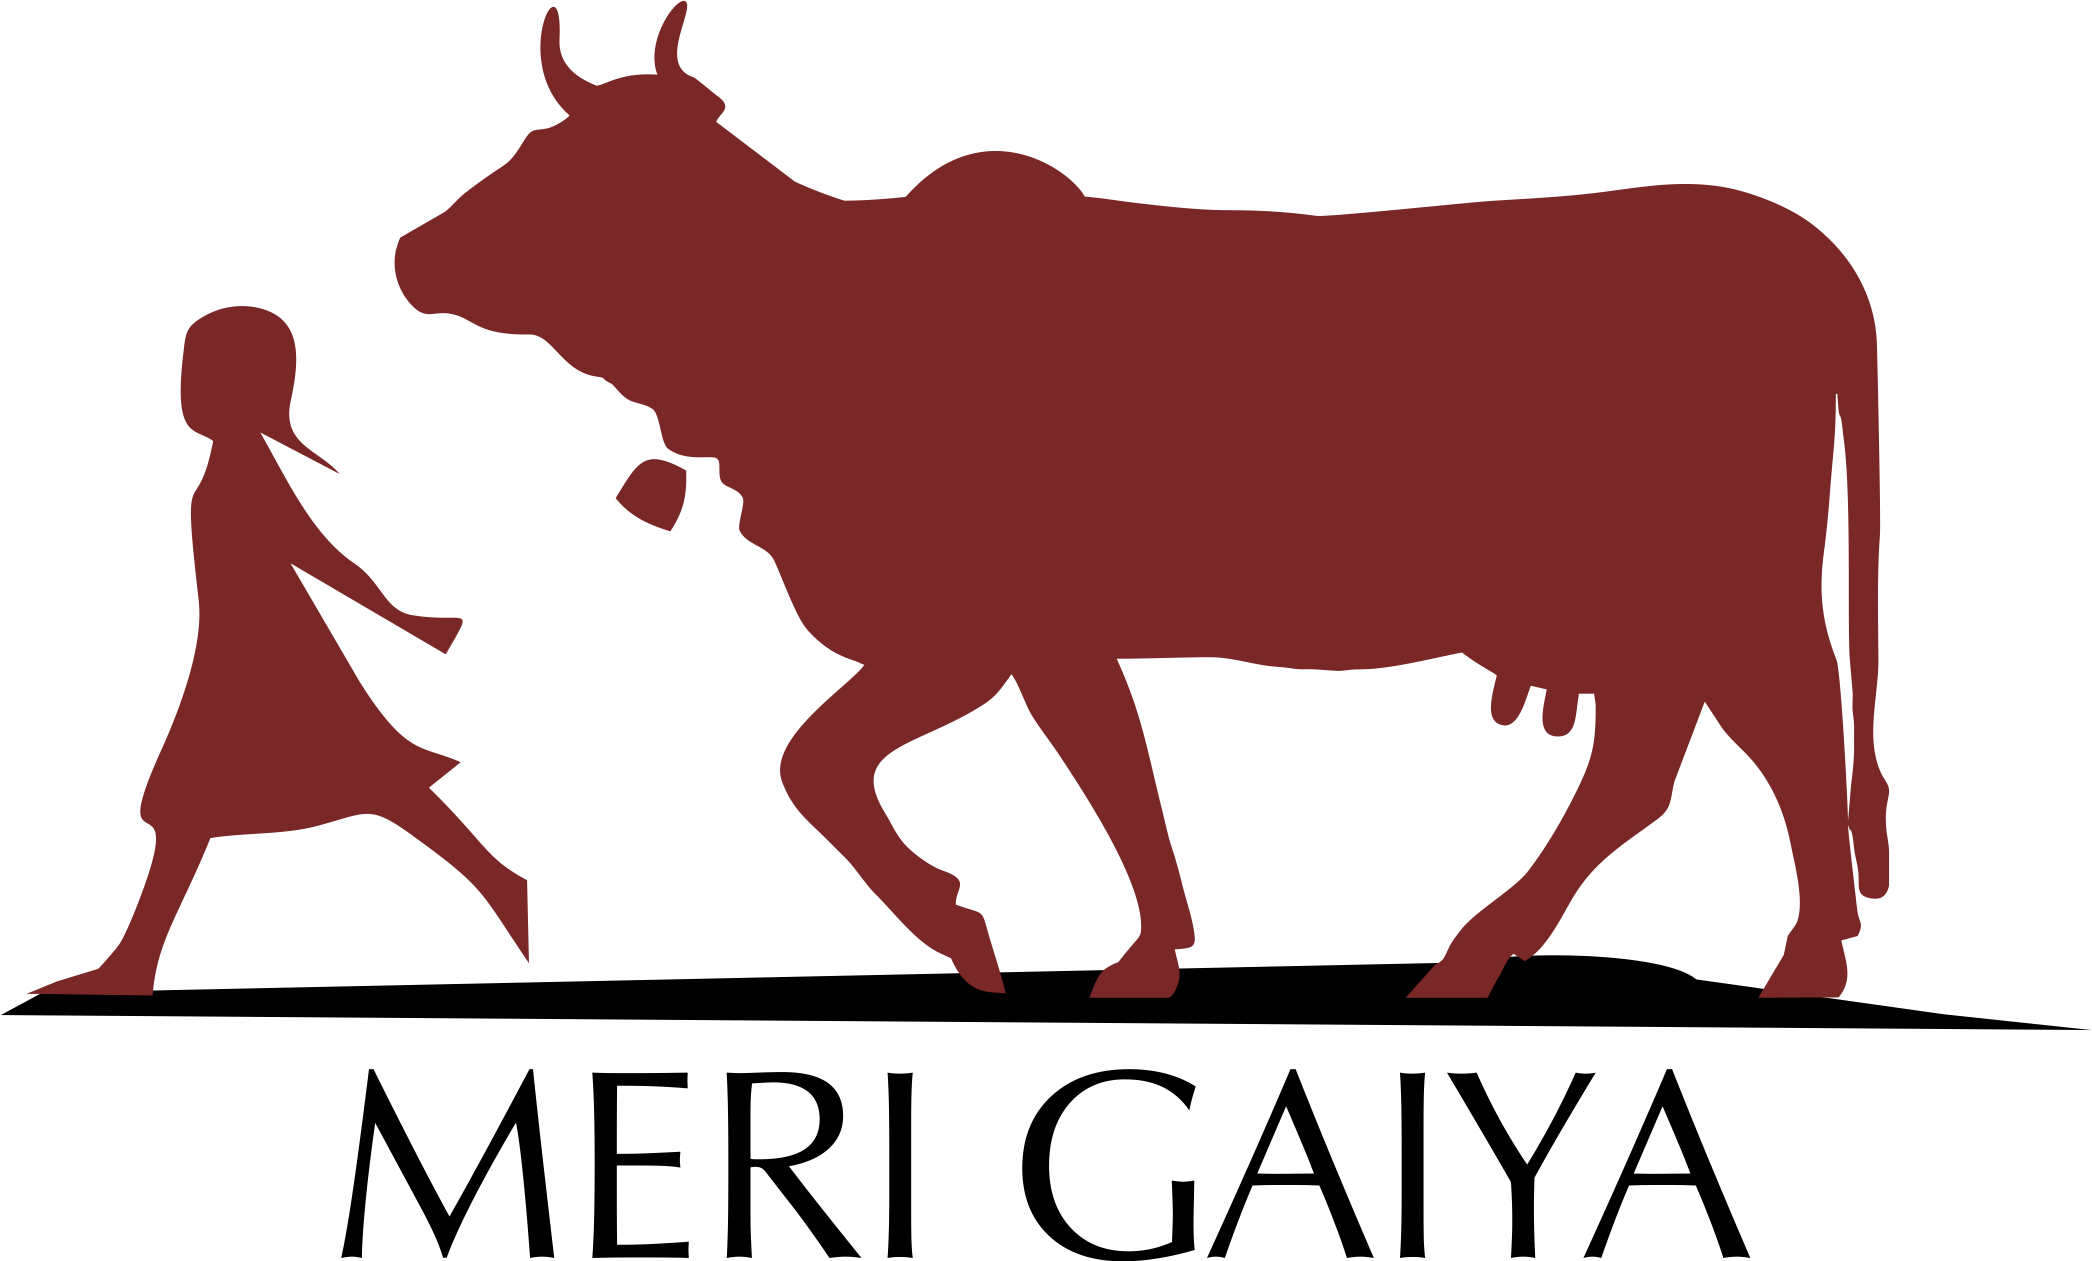 banner library download Gir free on dumielauxepices. Bull clipart cow.